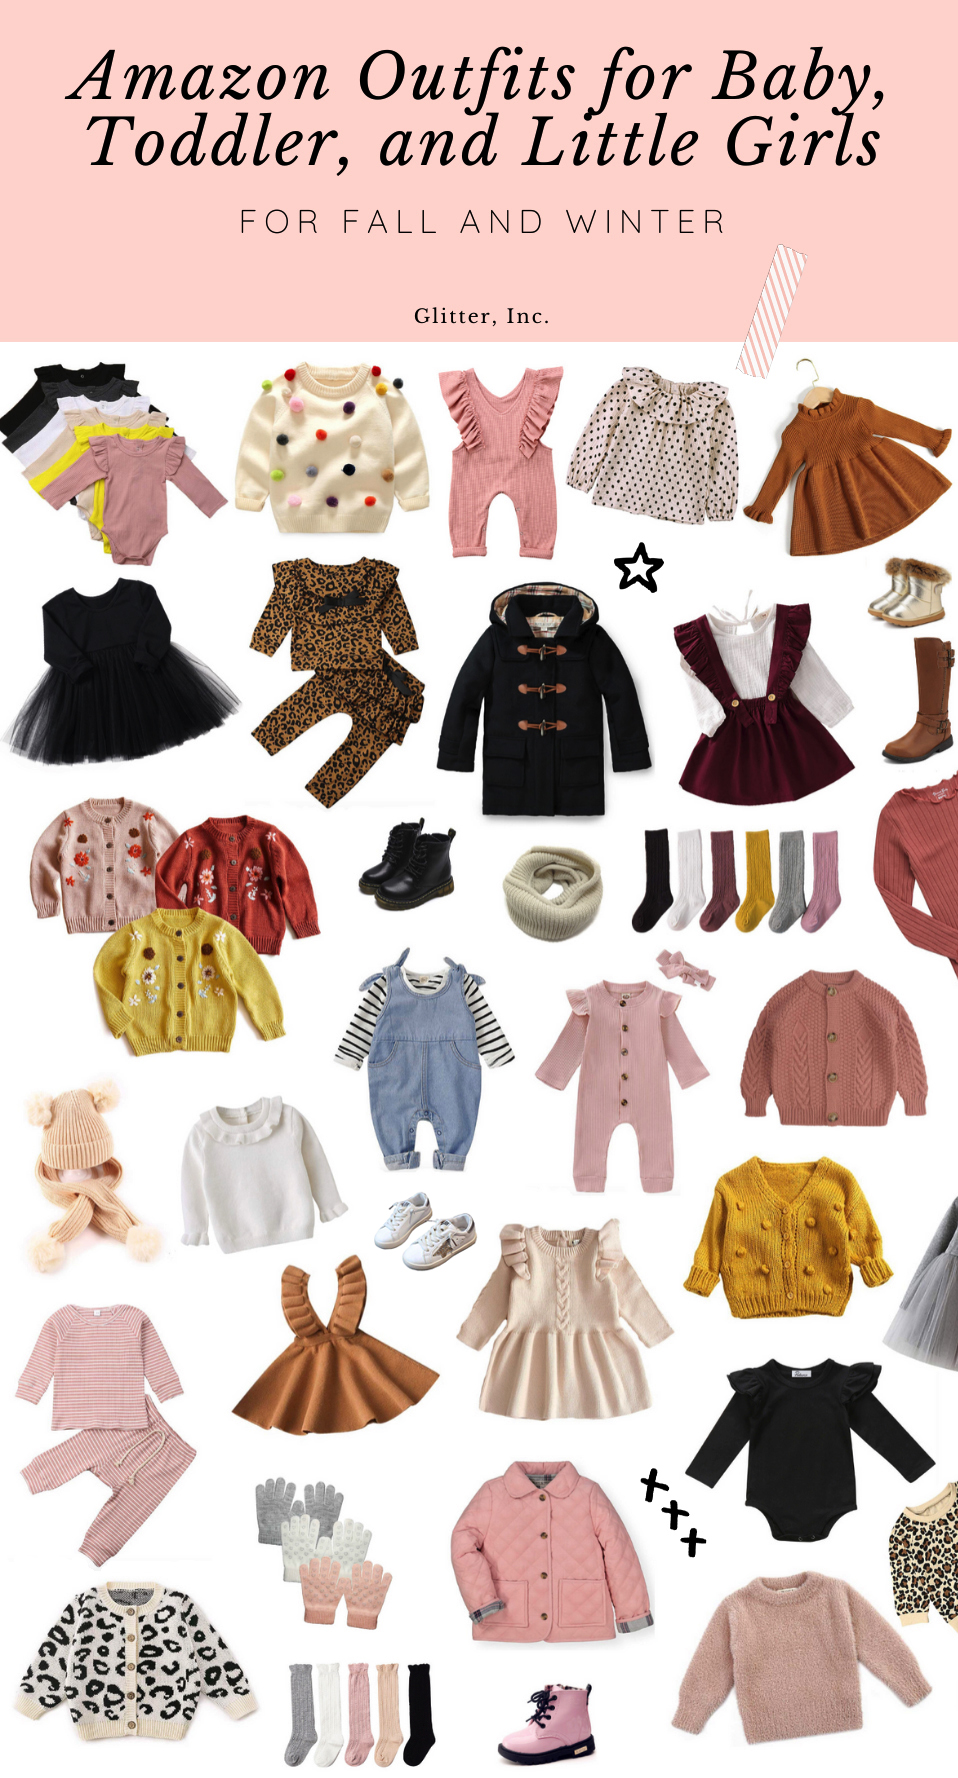 Amazon Outfits for Baby Girls: 6+ Fall/Winter Items  Glitter, Inc.